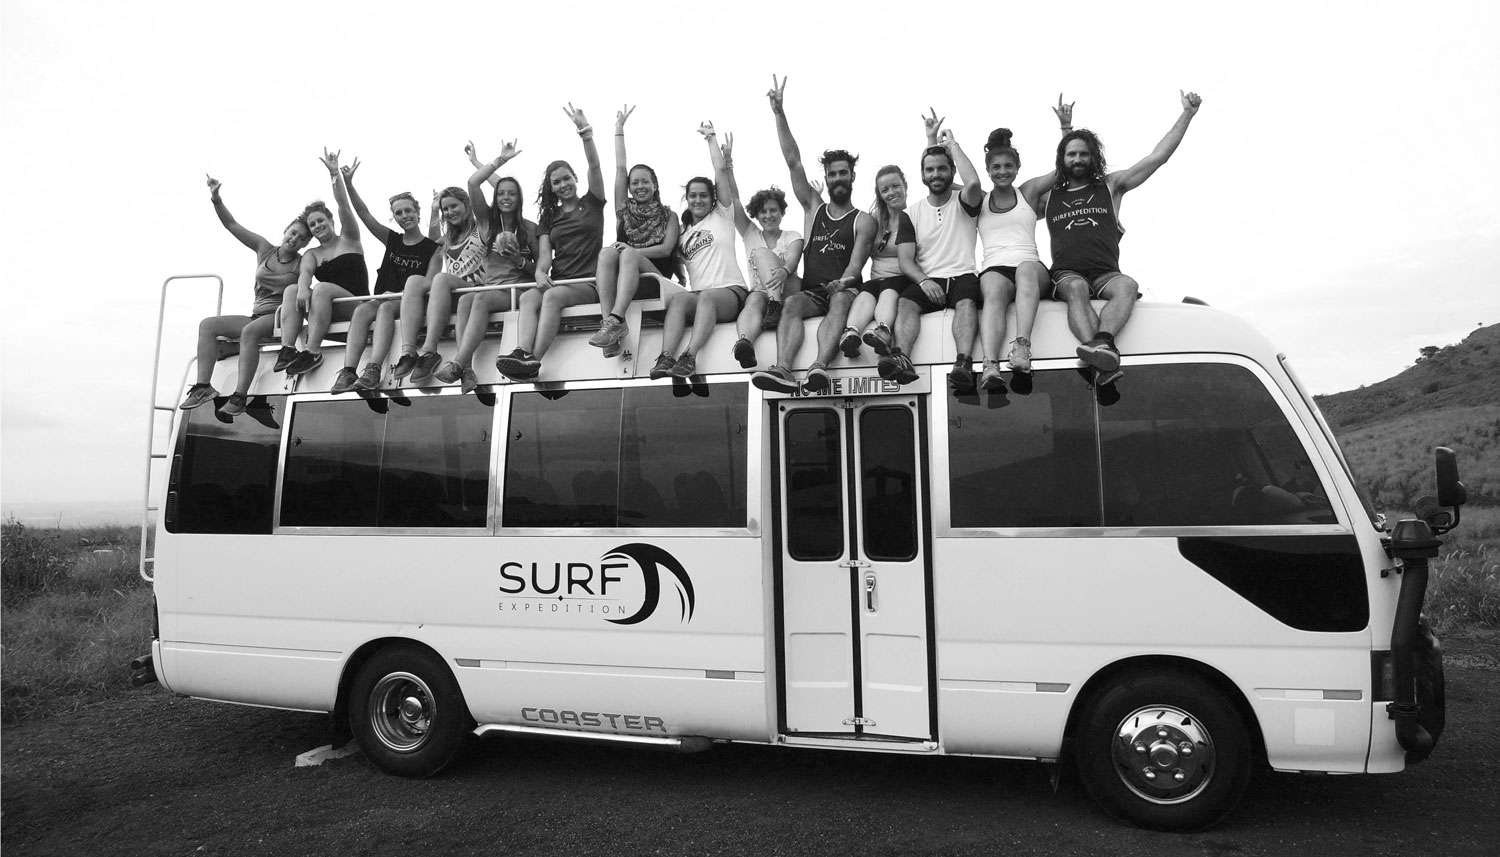 Magic bus surf - Portrait de nomade Sebastion Surf Expedition - Nomad Junkies